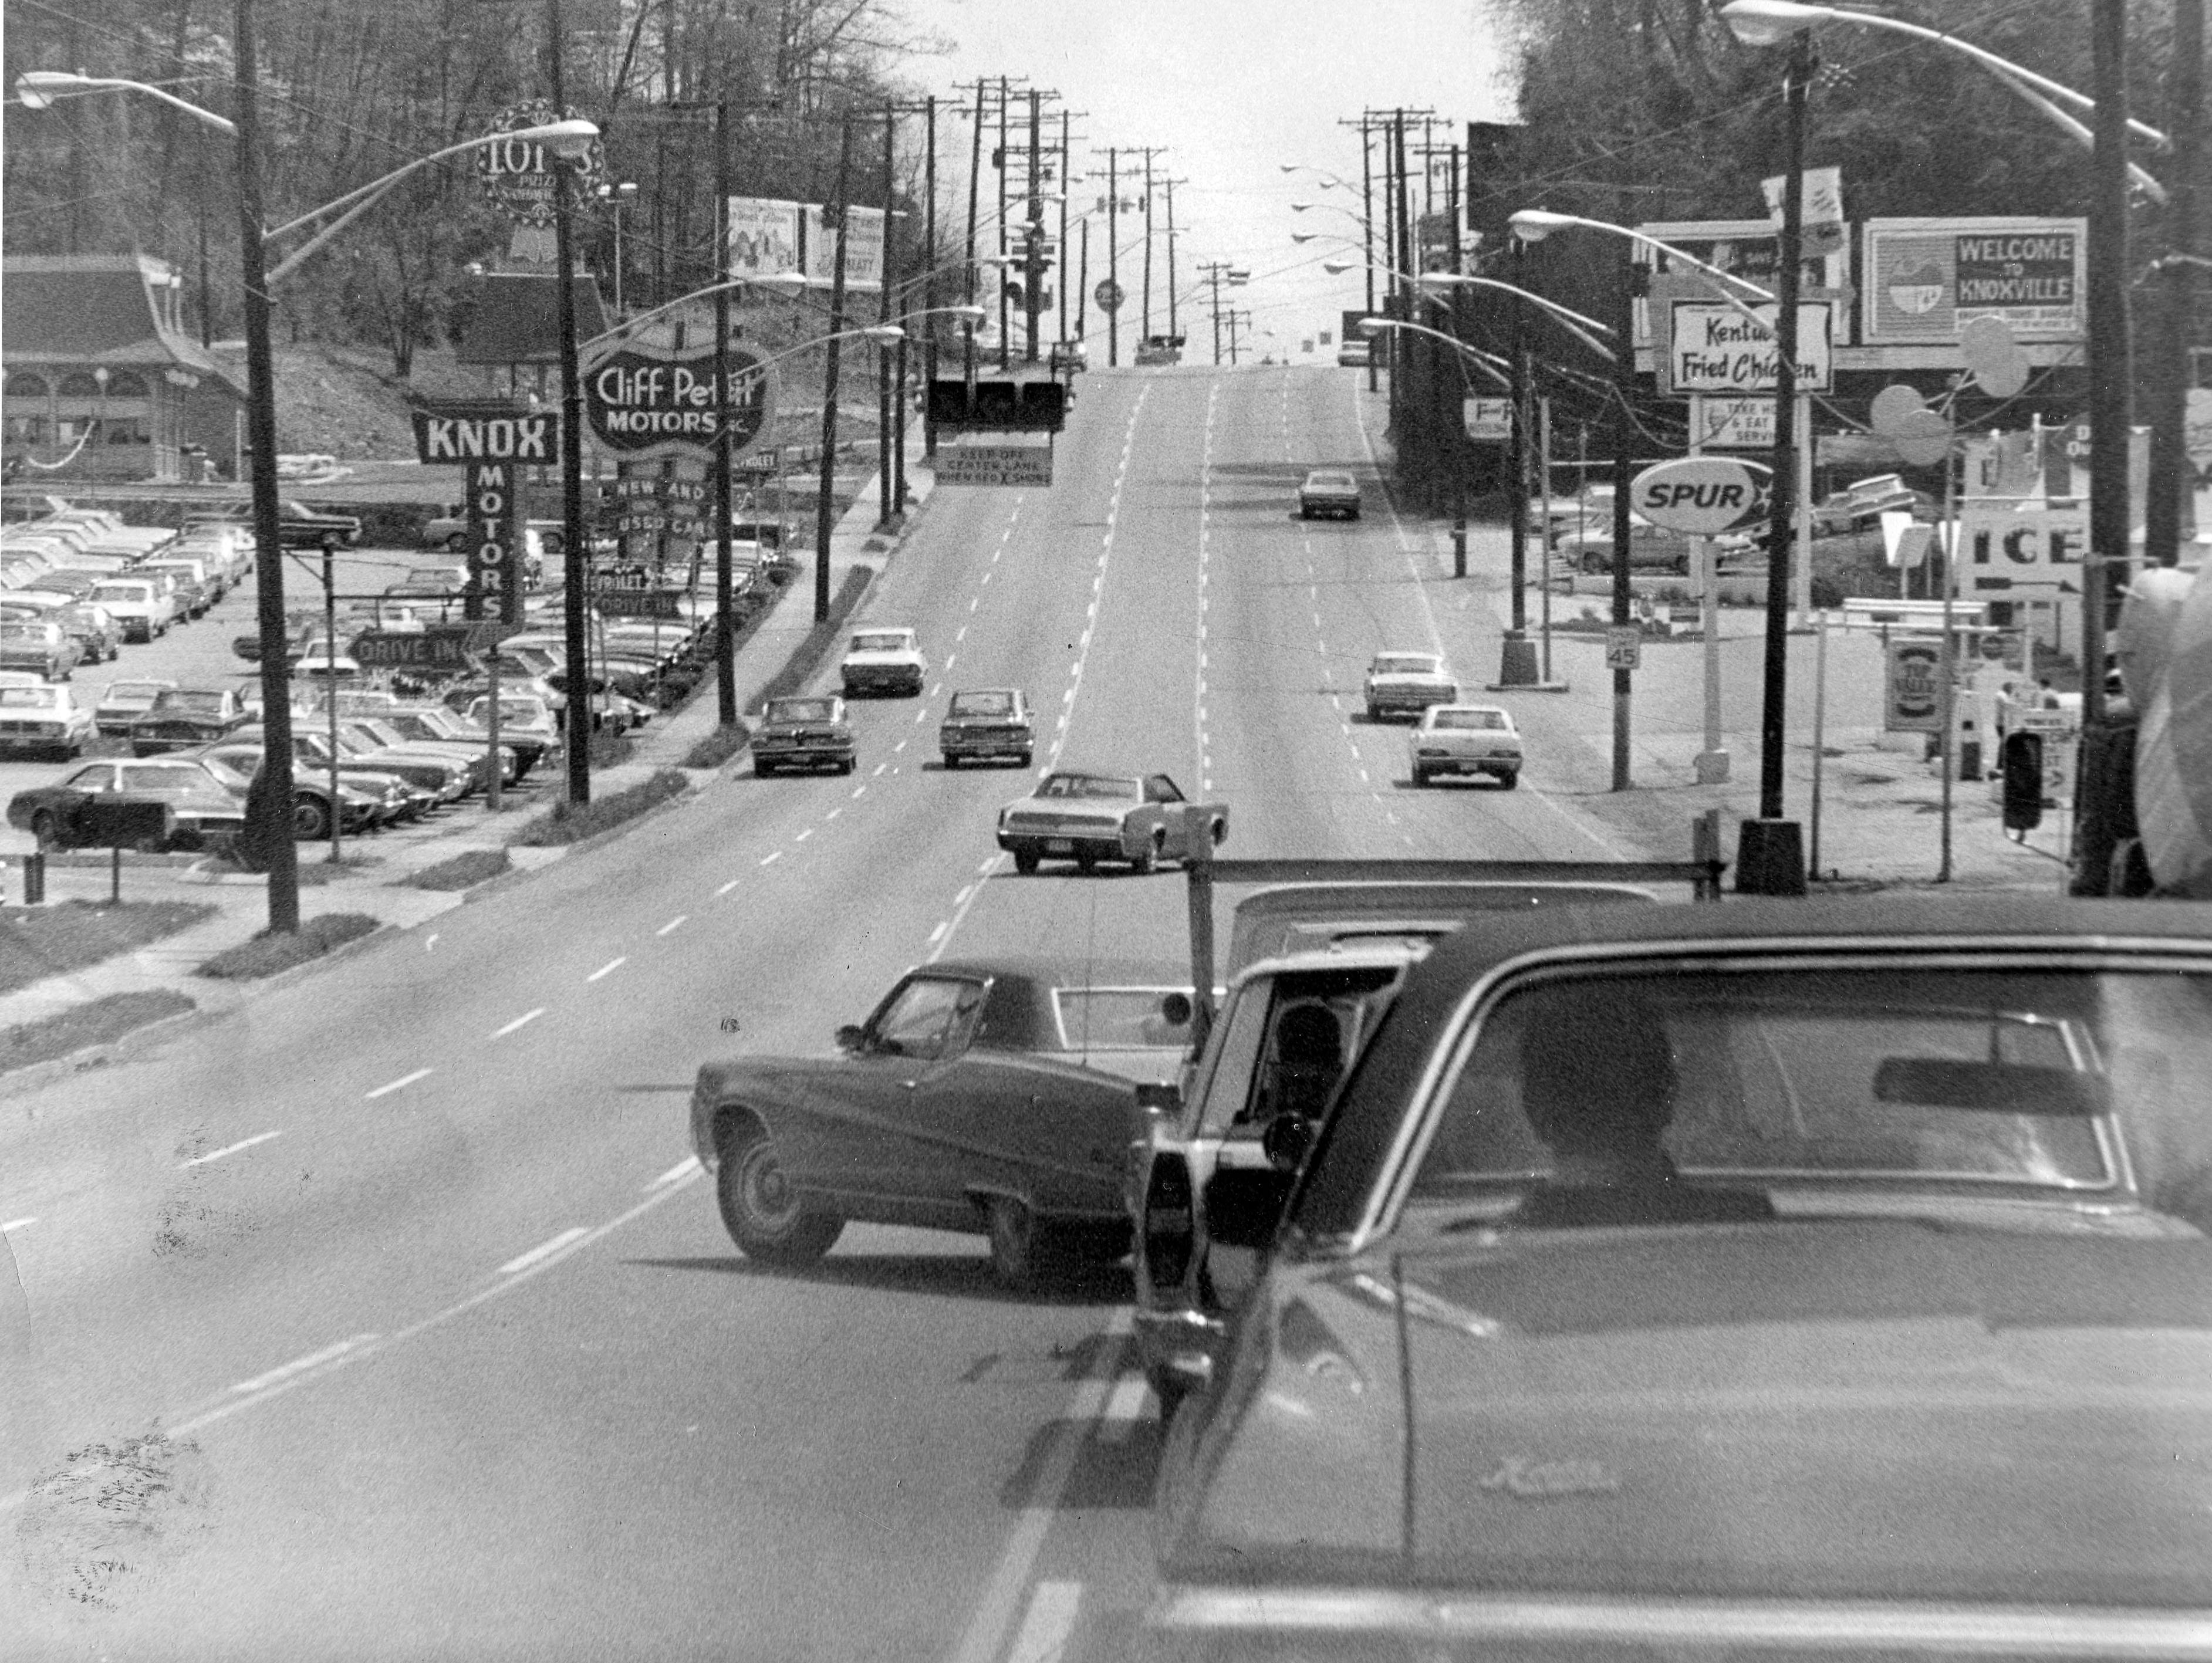 "Chapman Highway in 1970. According to the caption, ""The center lane on Chapman Highway is for motorist making left turns from 9 a.m. to 3 p.m. and from 6 p.m. to 6 a.m., but this motorist chose to make a left turn from the inside southbound through lane. This forced through traffic to slow to a virtual stop and created the danger of collision on the busy highway. The center lane is for inbound traffic 6 to 9 a.m. and for outbound traffic 3 to 6 p.m."